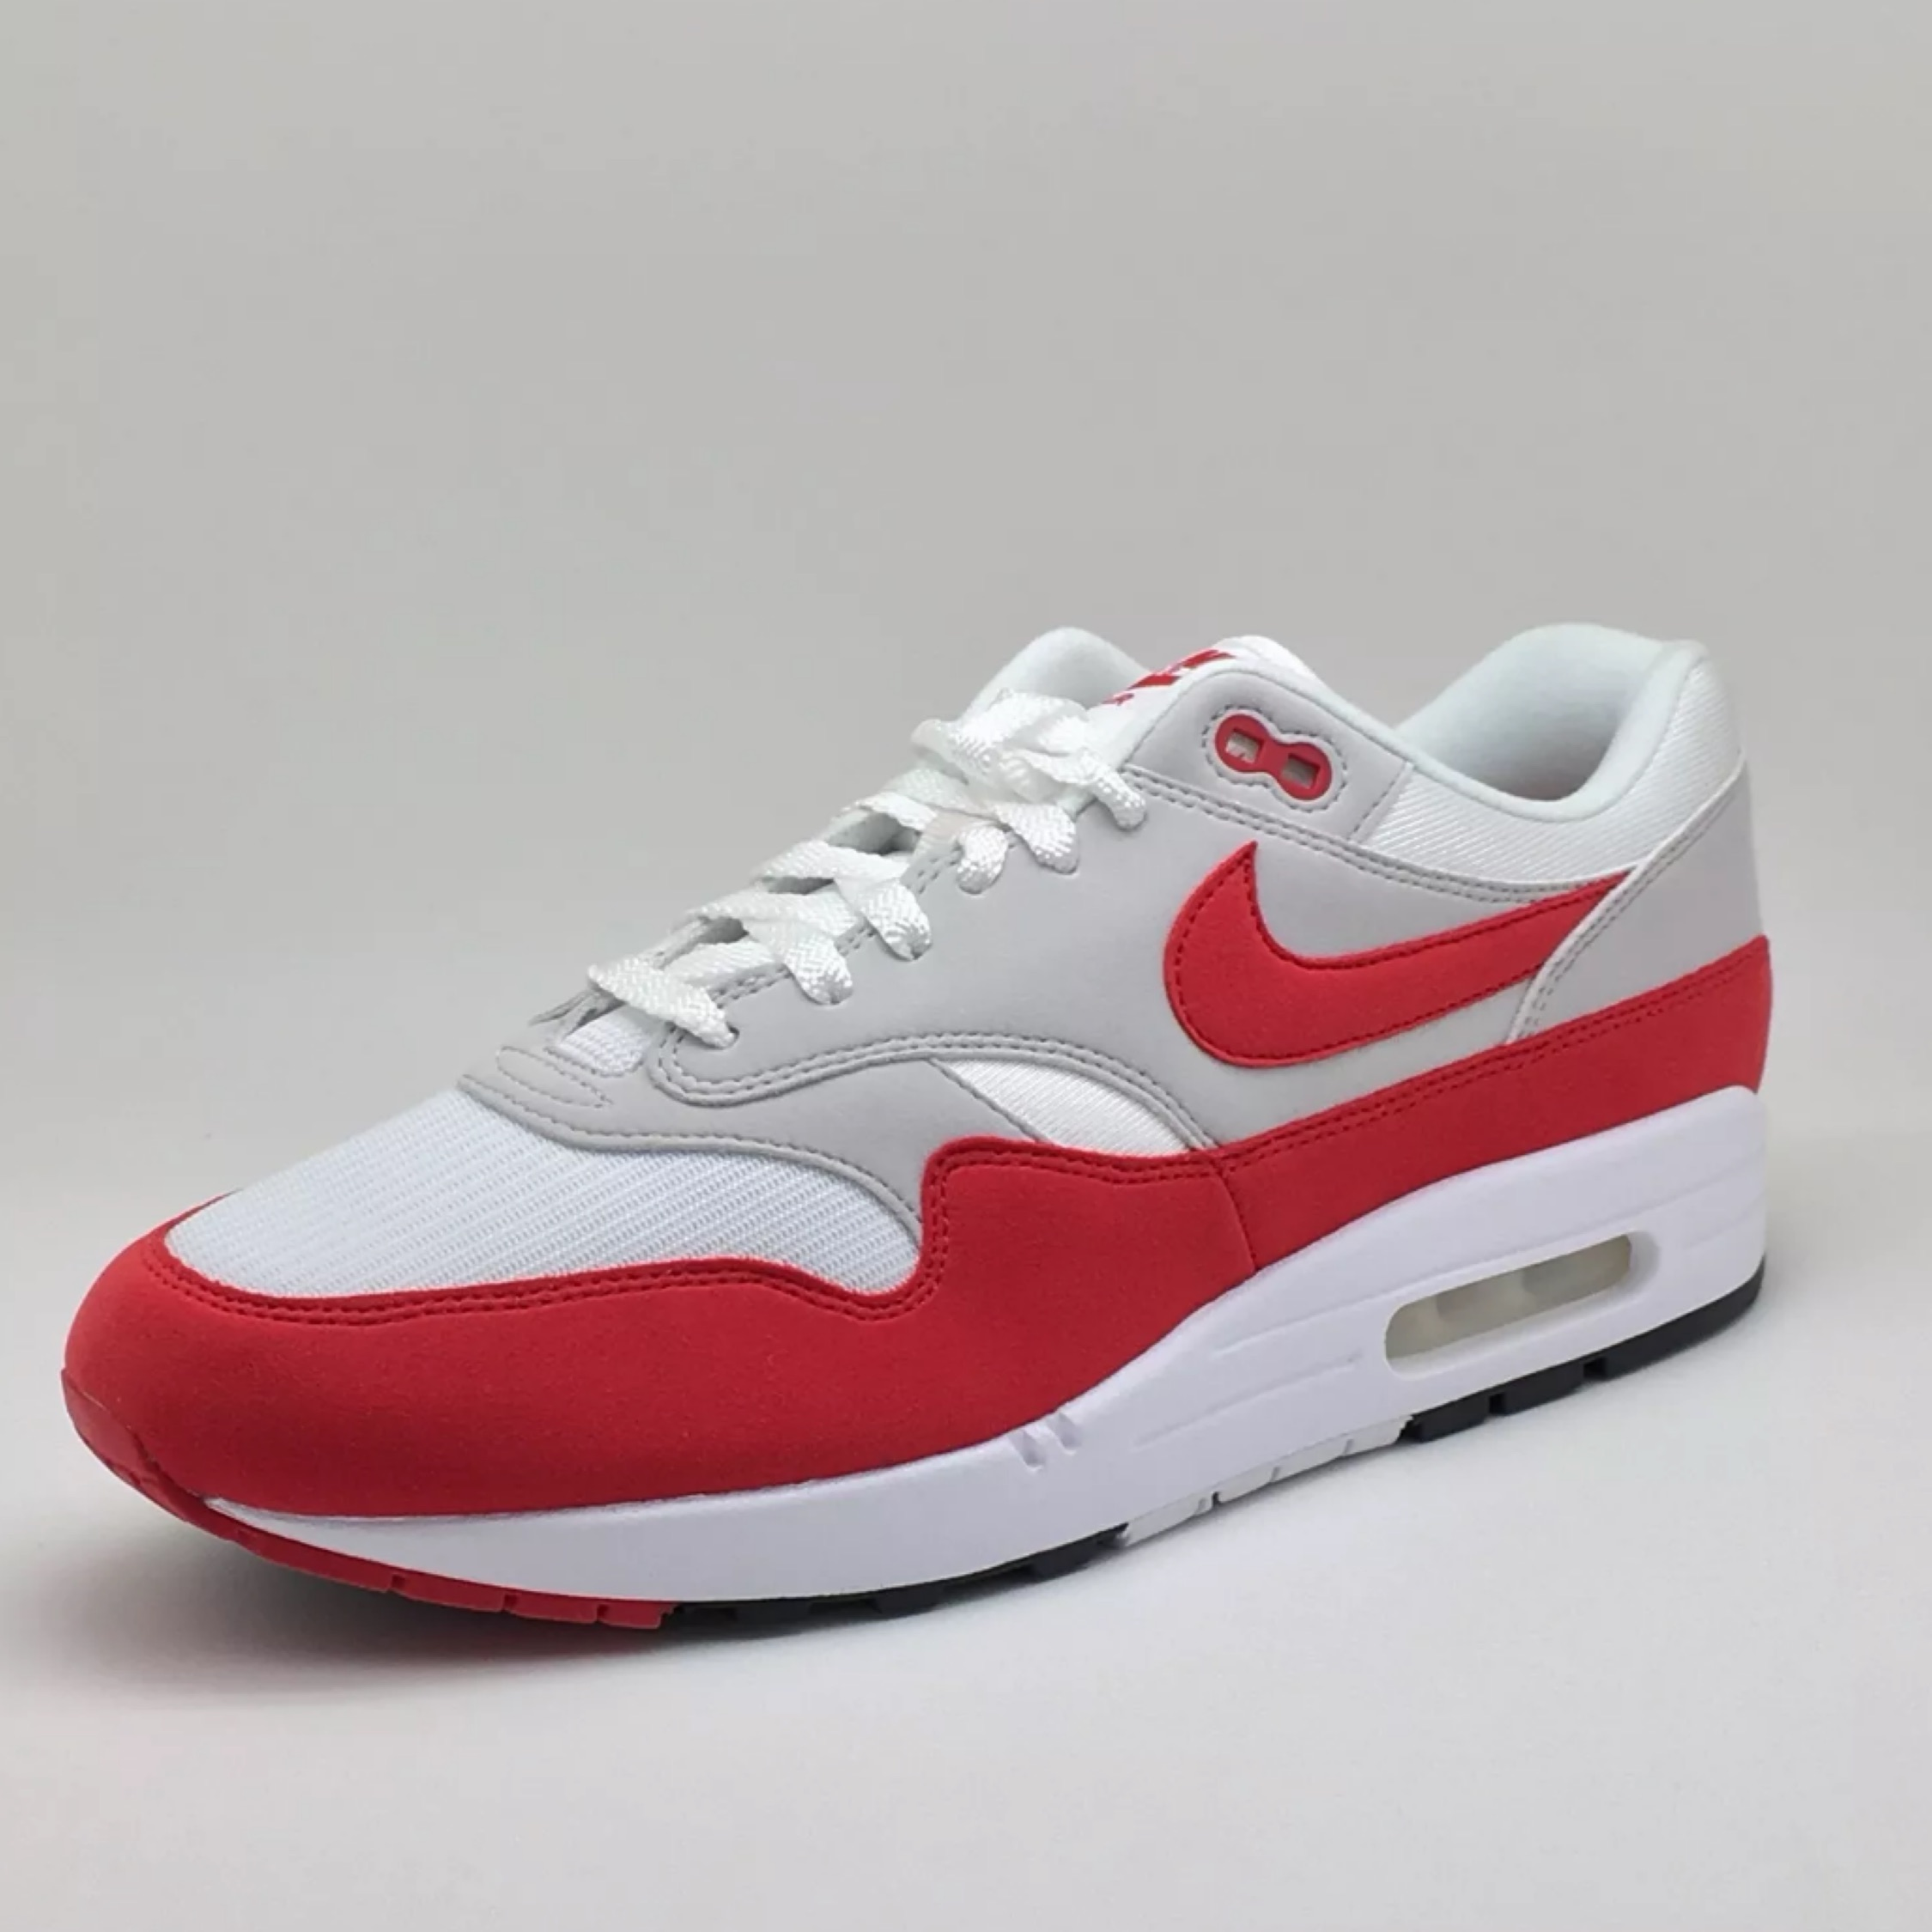 low priced 9493c 7503a Nike Air Max 1 Og 2017 Anniversary